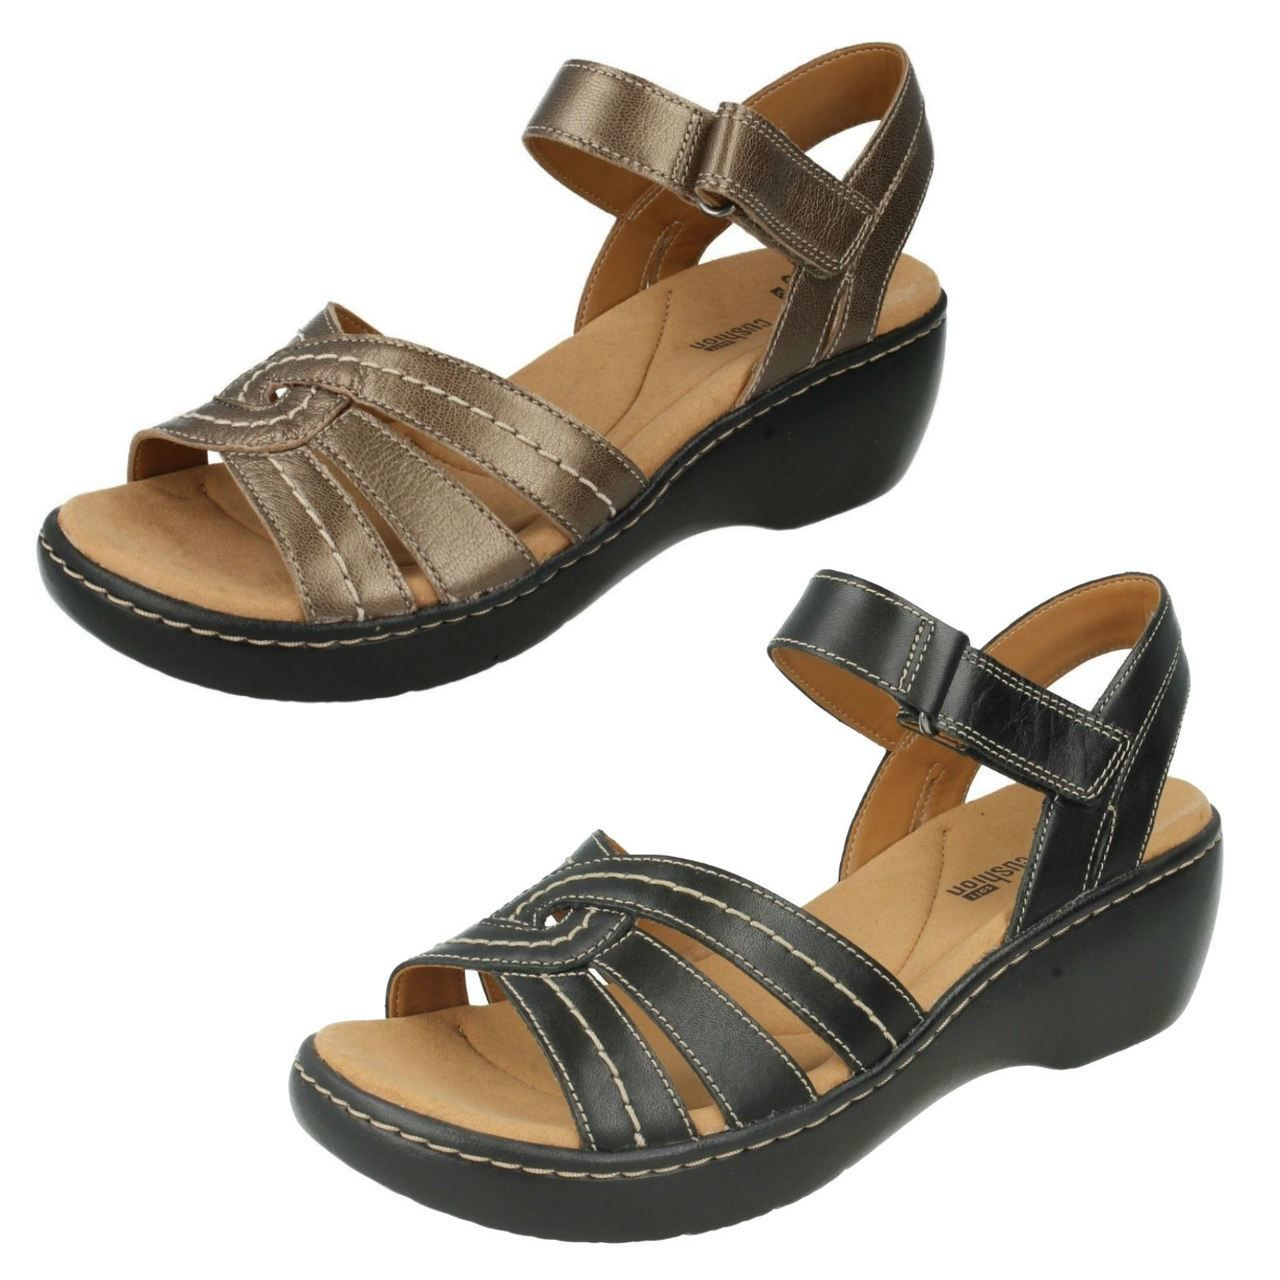 f343b5c7748c Buy clarks ladies sandals uk cheap